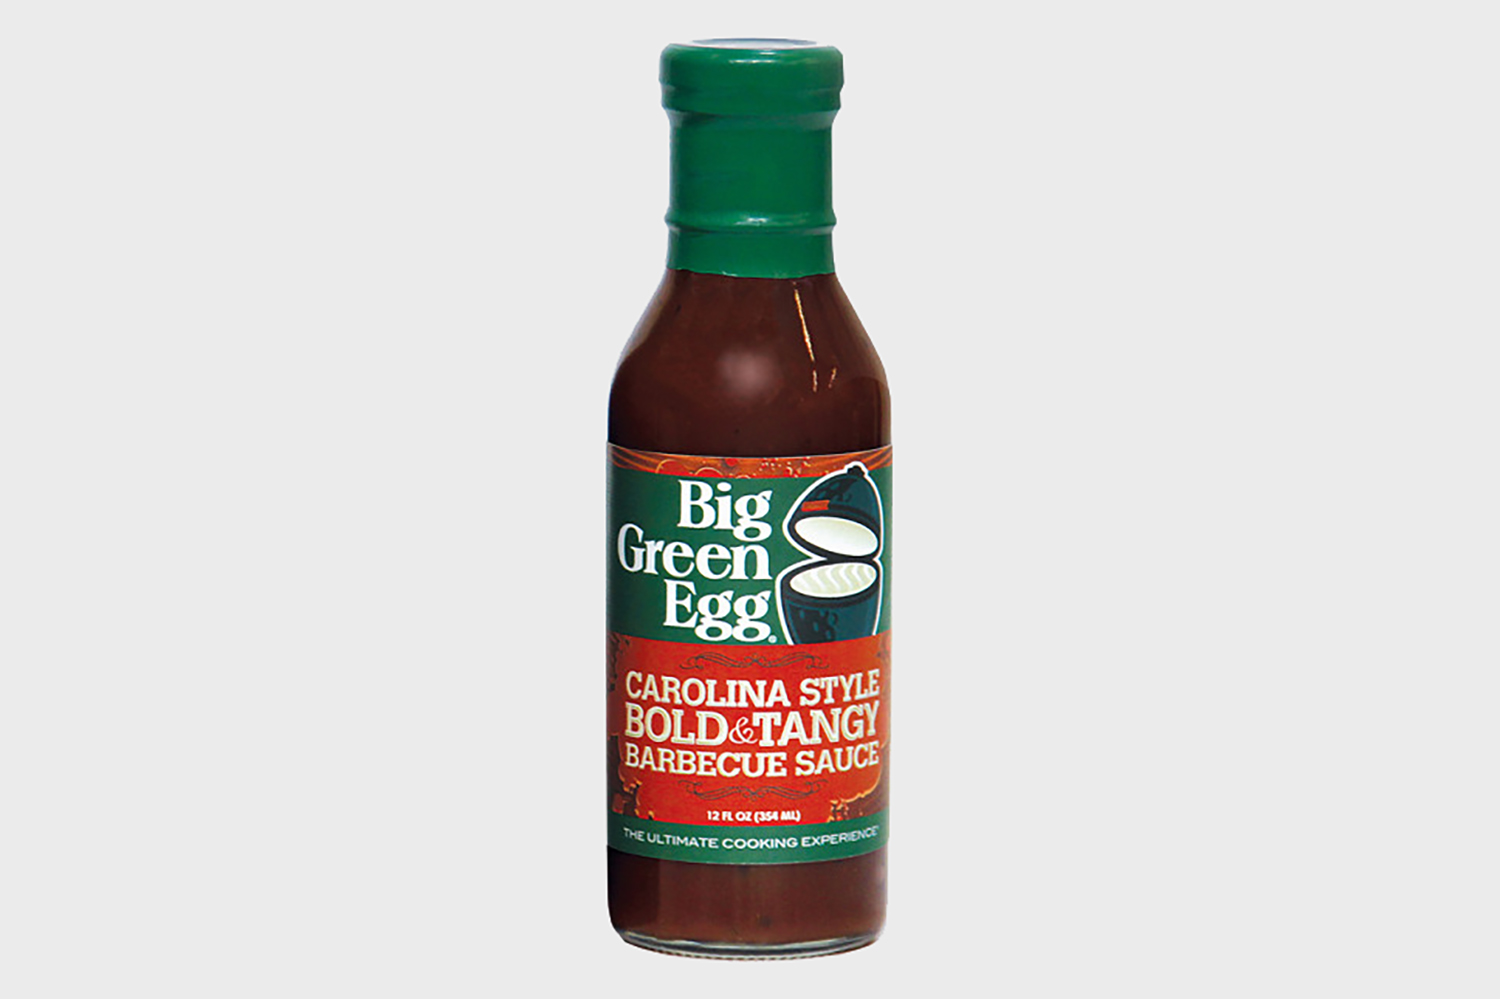 Big green egg bbq sauce